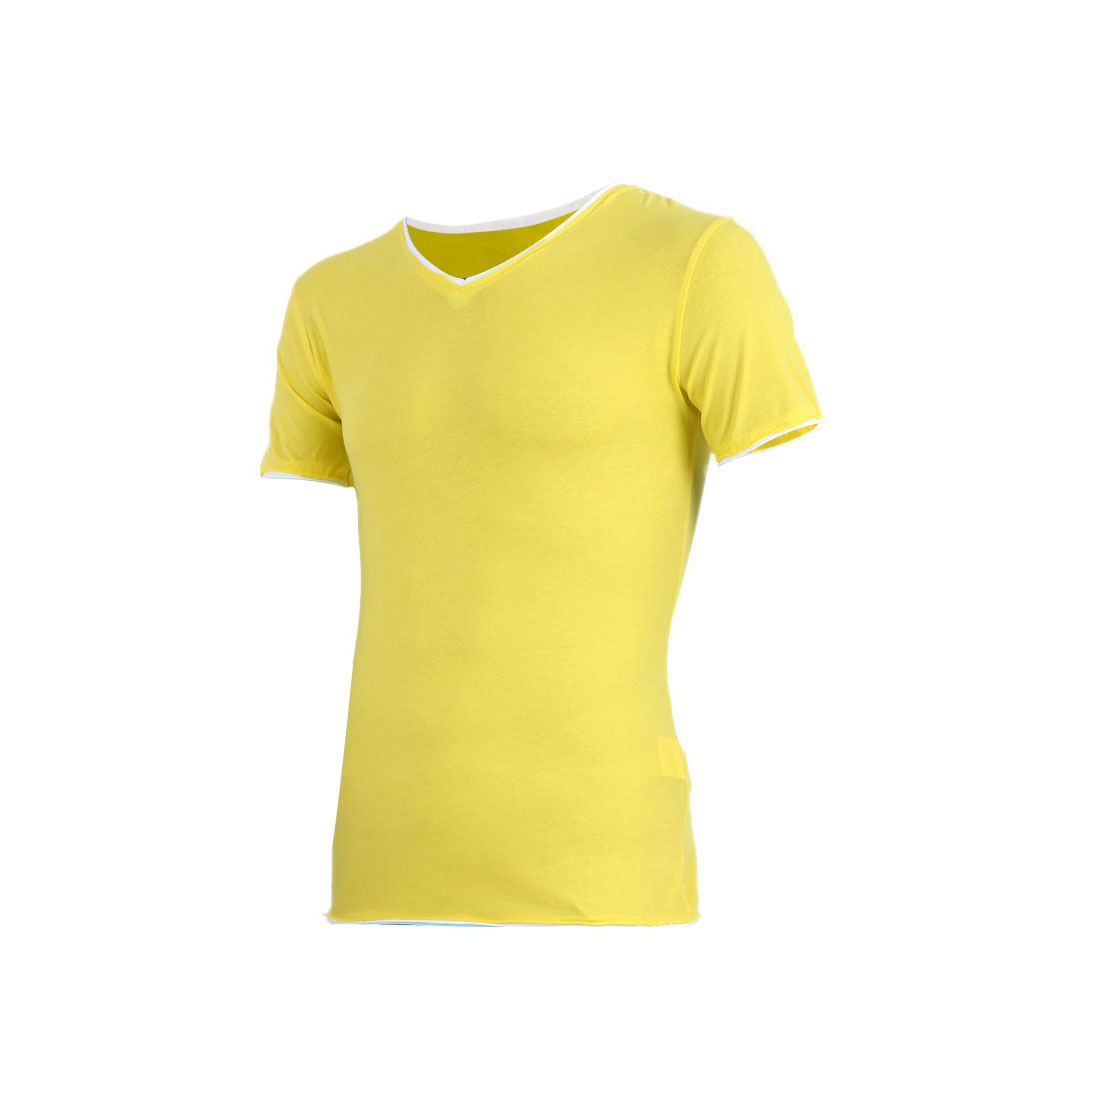 Men Color Blocking Detail Slim Fit Short Sleeve Shirt Lemon Yellow S